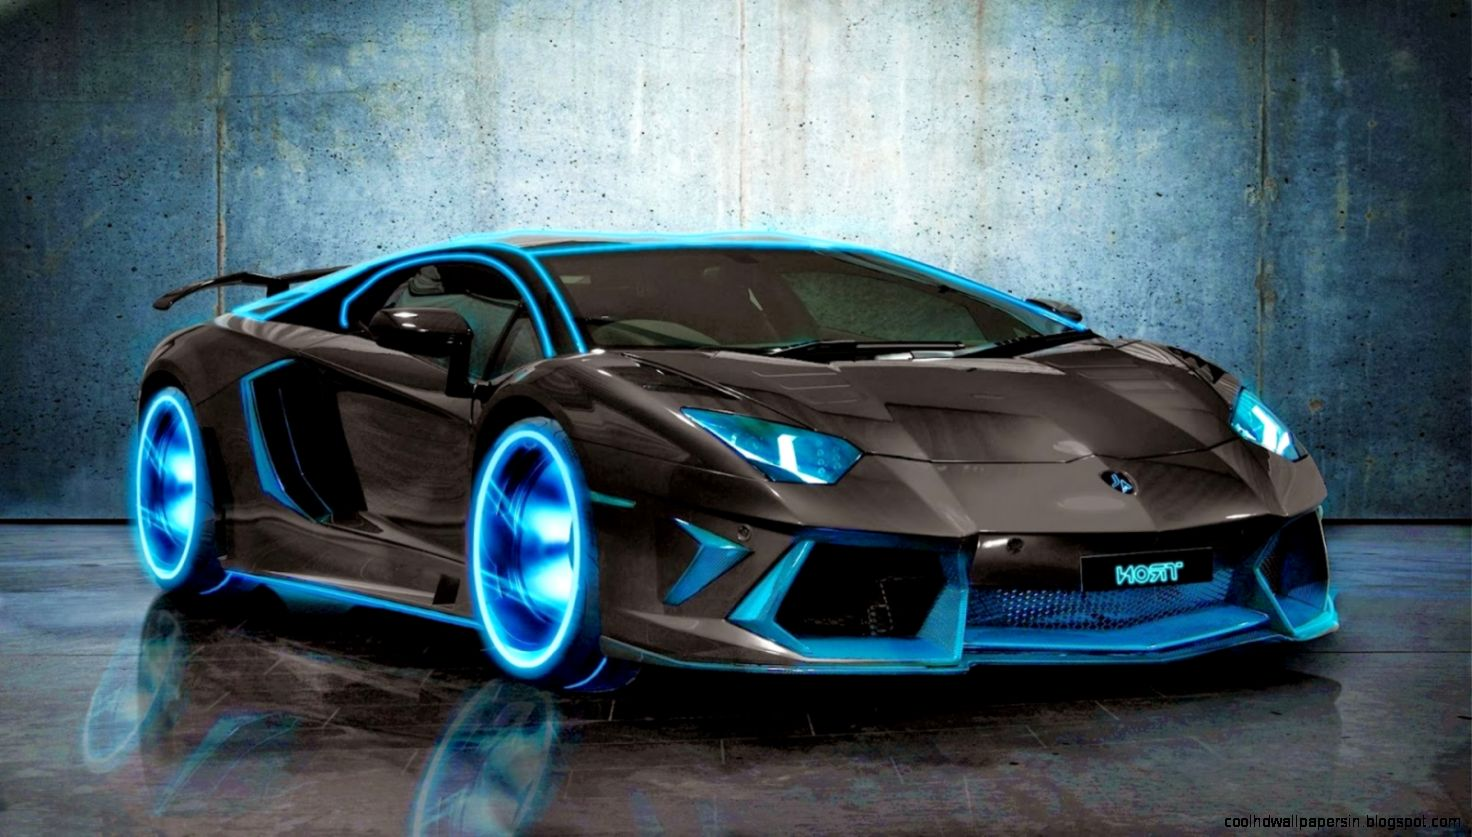 View Original Size Lamborghini Wallpapers Cool HD Image Source From This